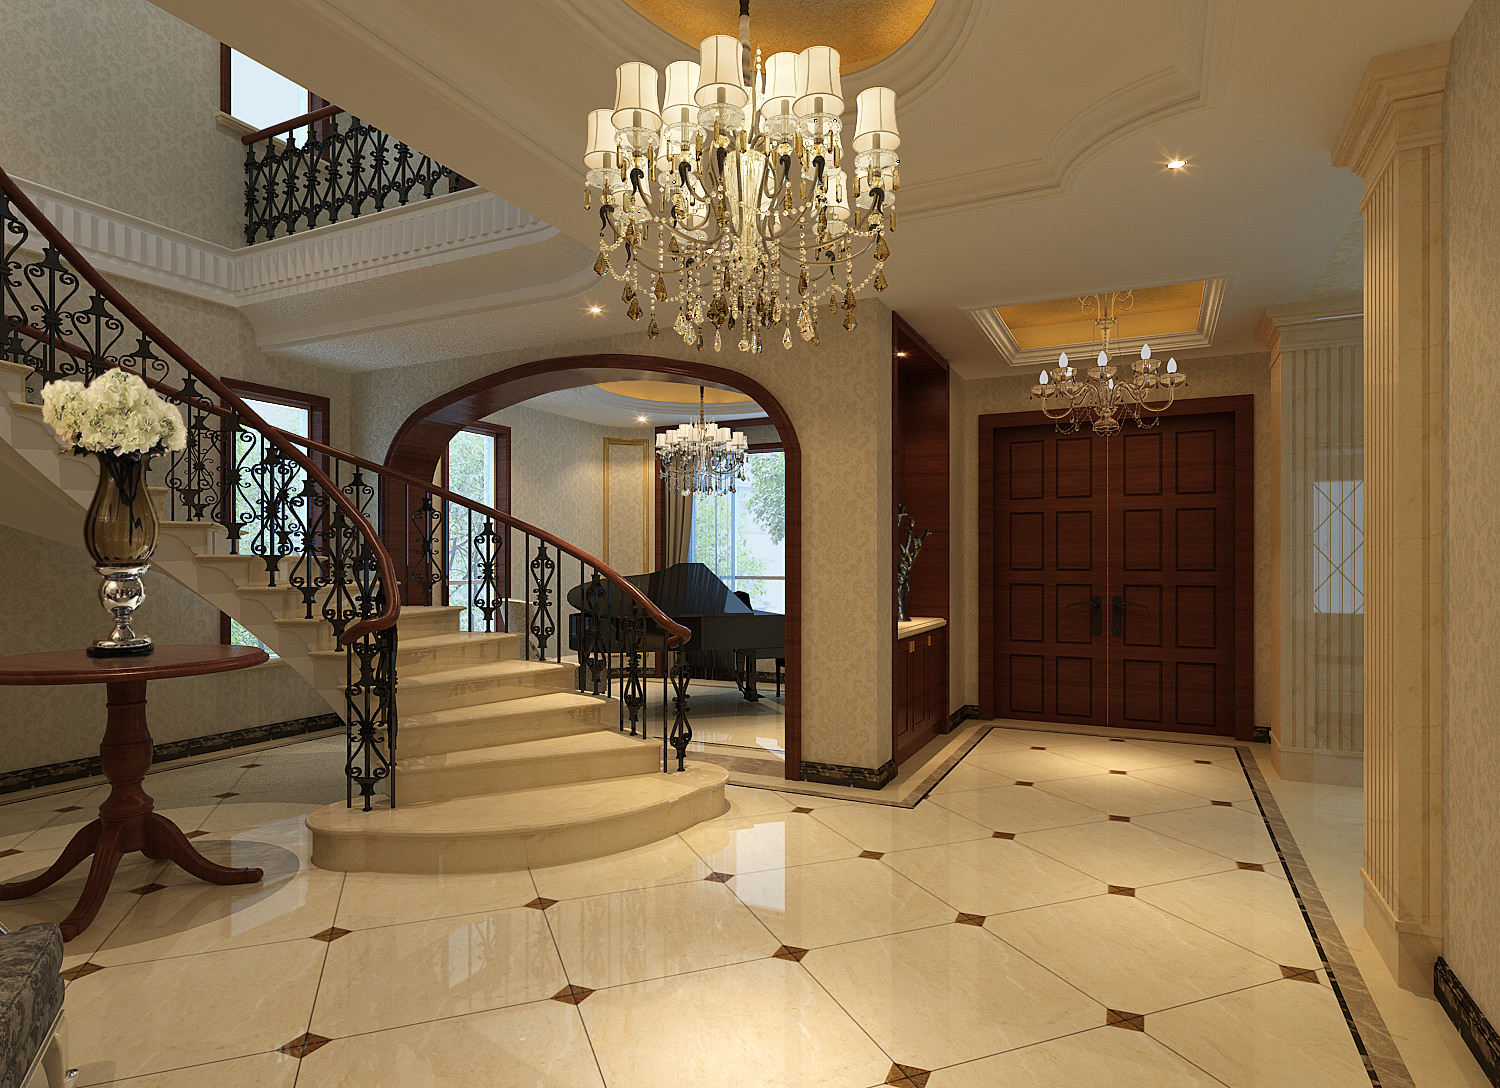 Marble Floor and wall